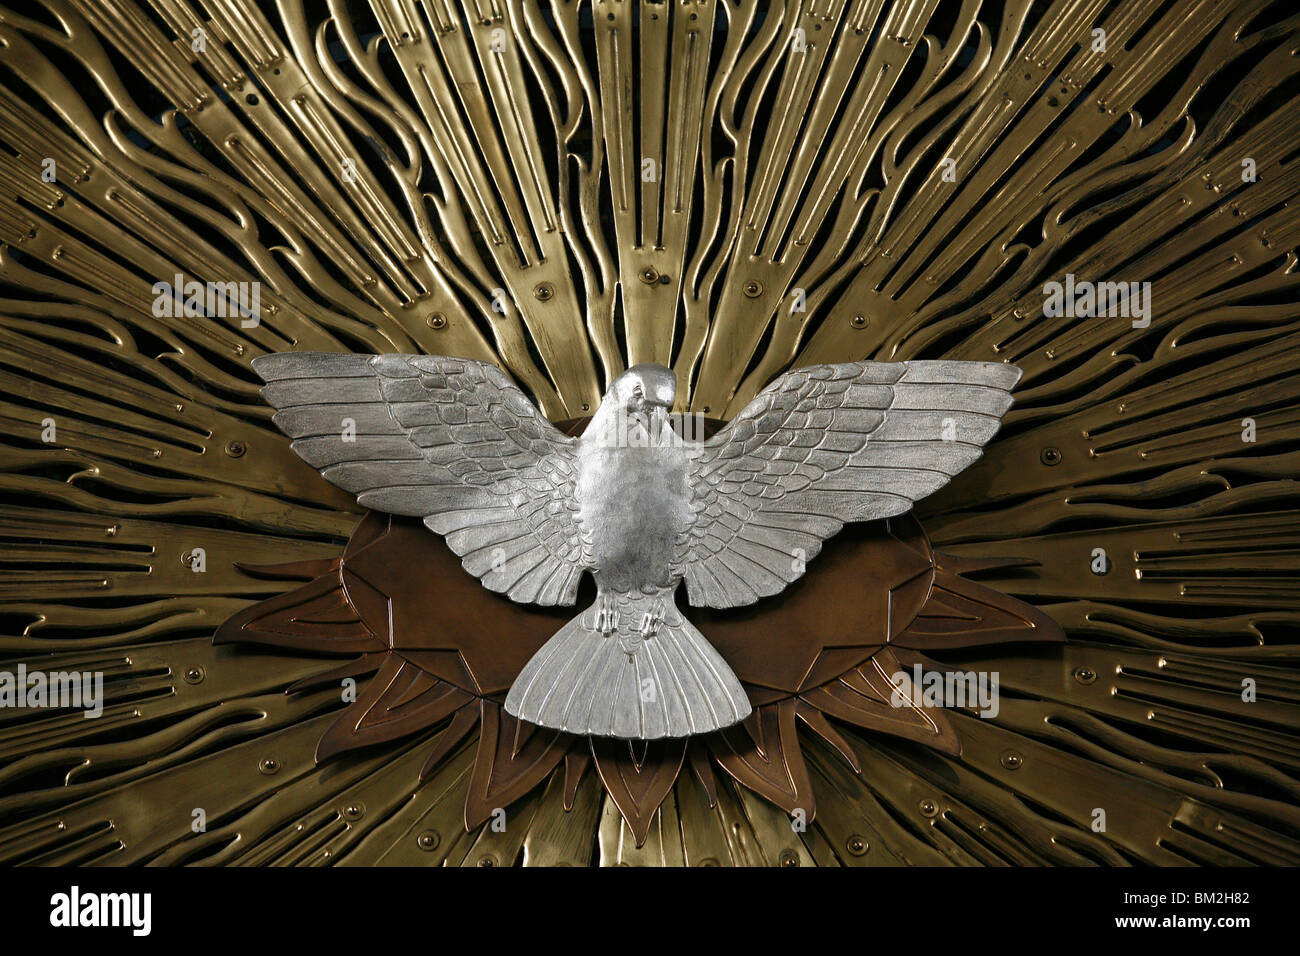 Heiliggeistkirche church holy spirit dove by Joseph Plecnik, Vienna, Austria - Stock Image